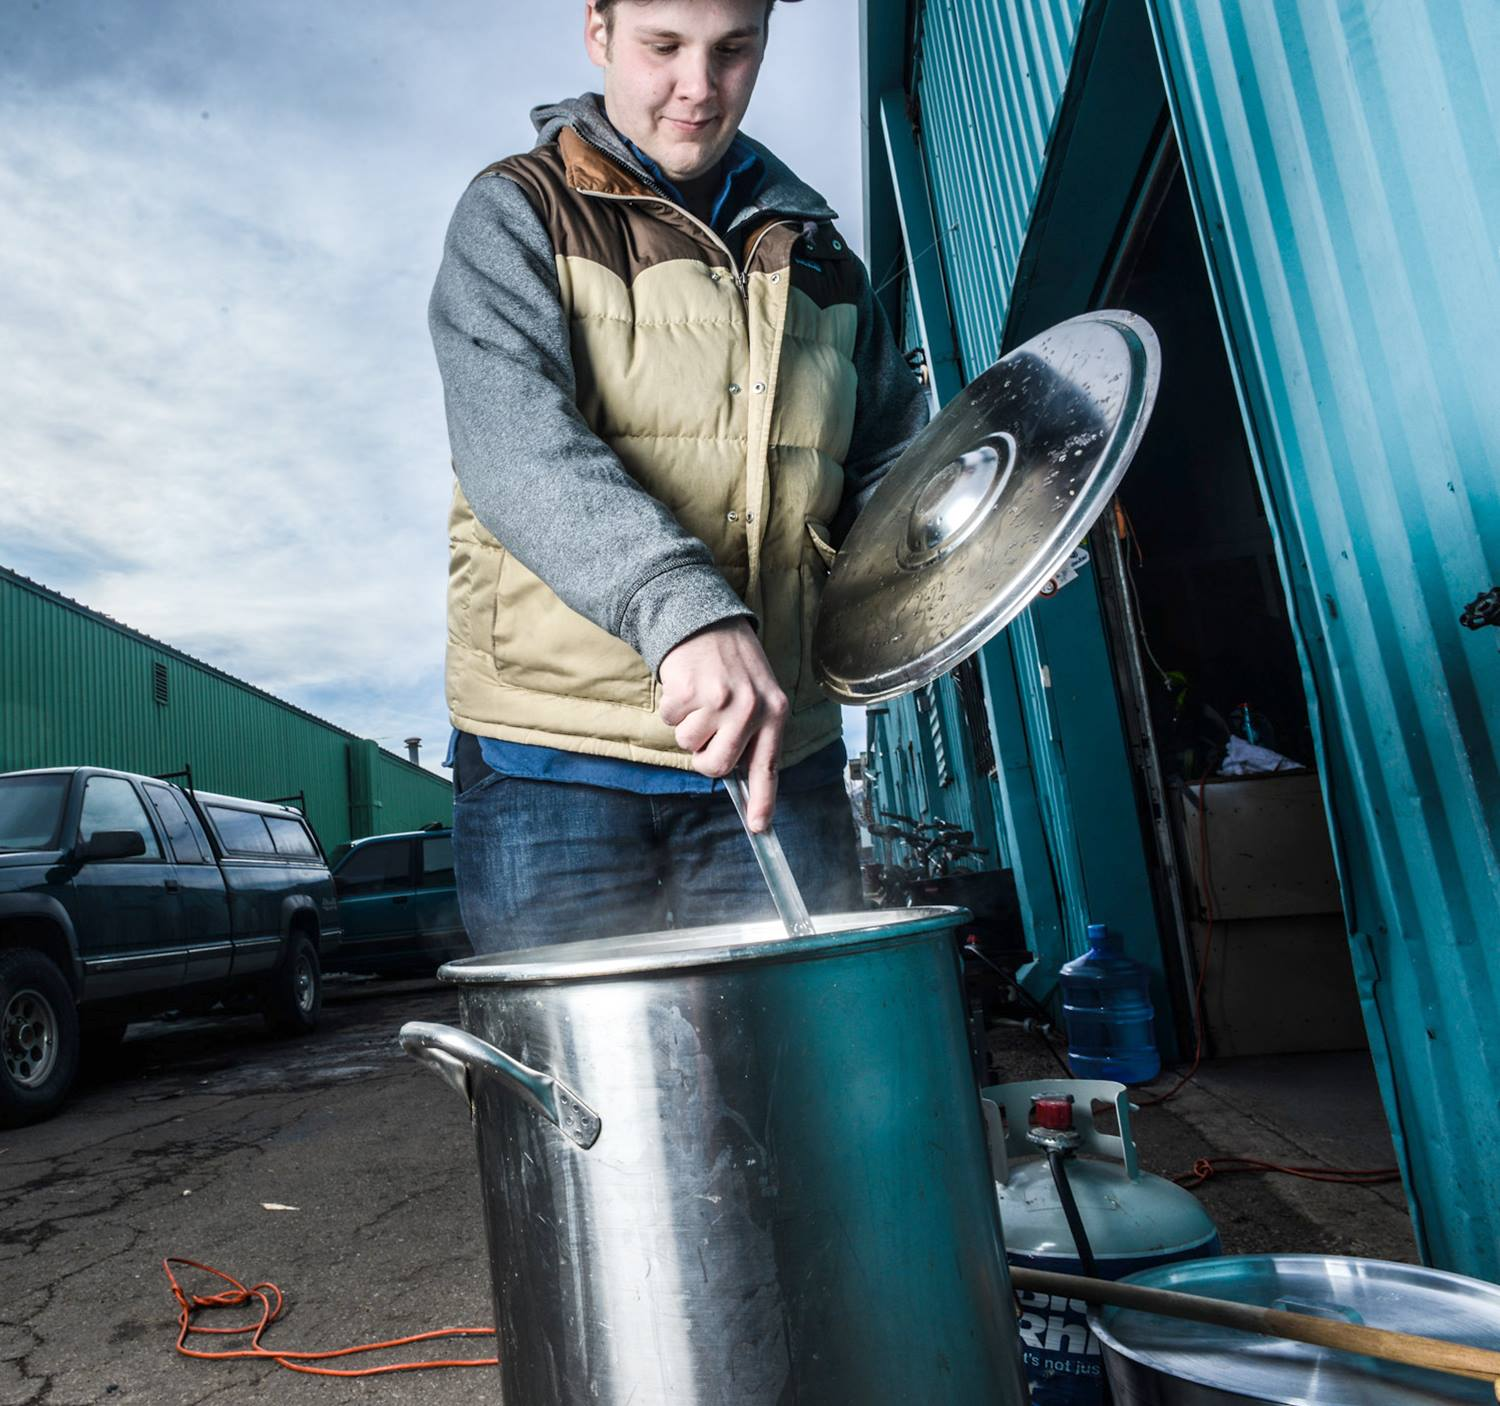 Homebrewer // Photo via American Homebrewers Association Facebook page